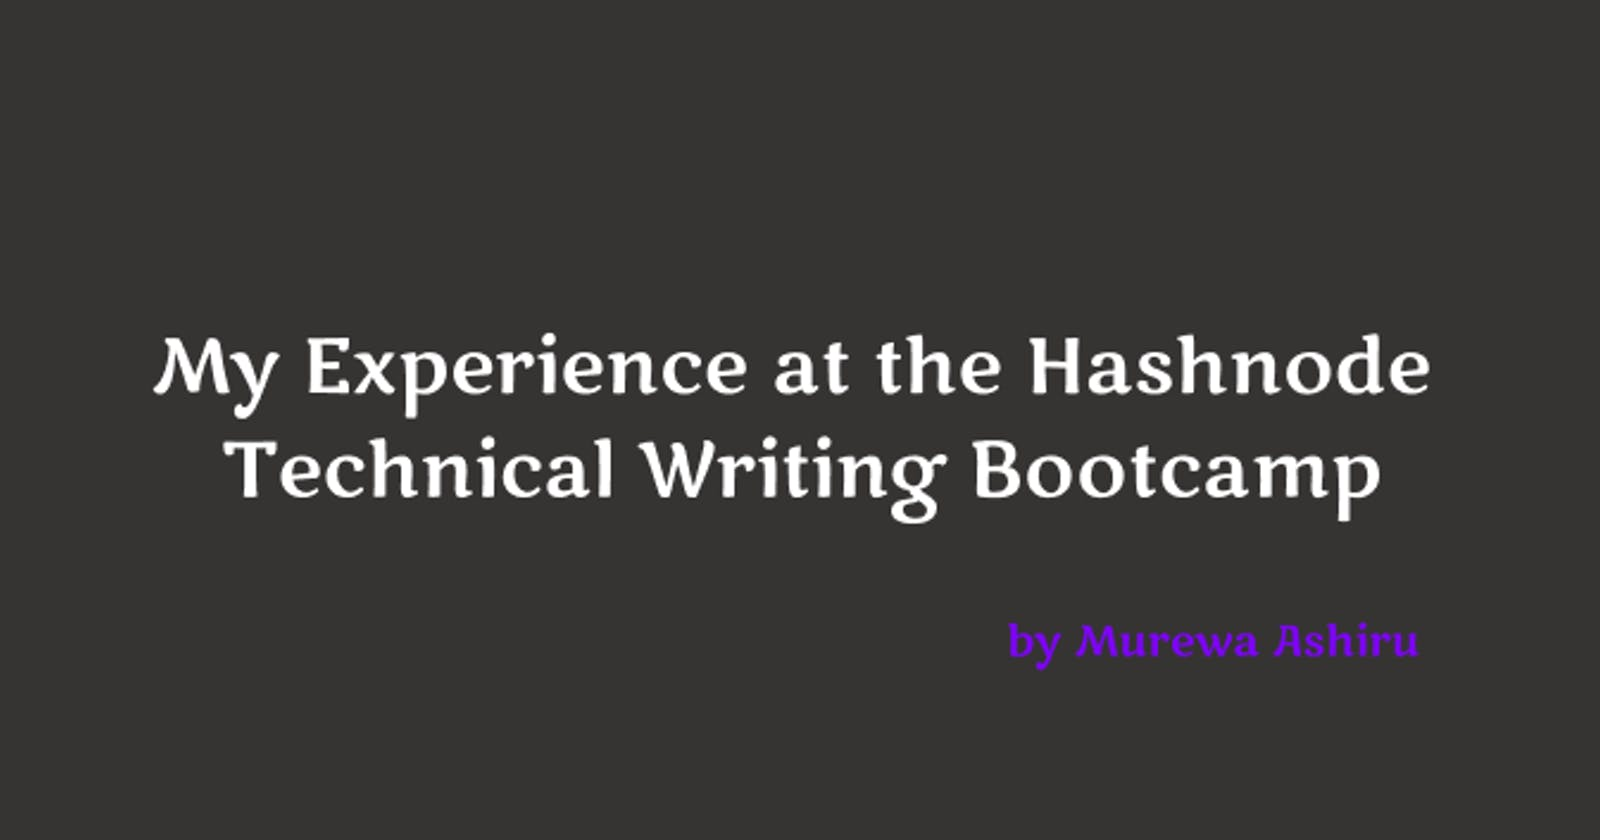 My Experience at the Hashnode Technical Writing Bootcamp